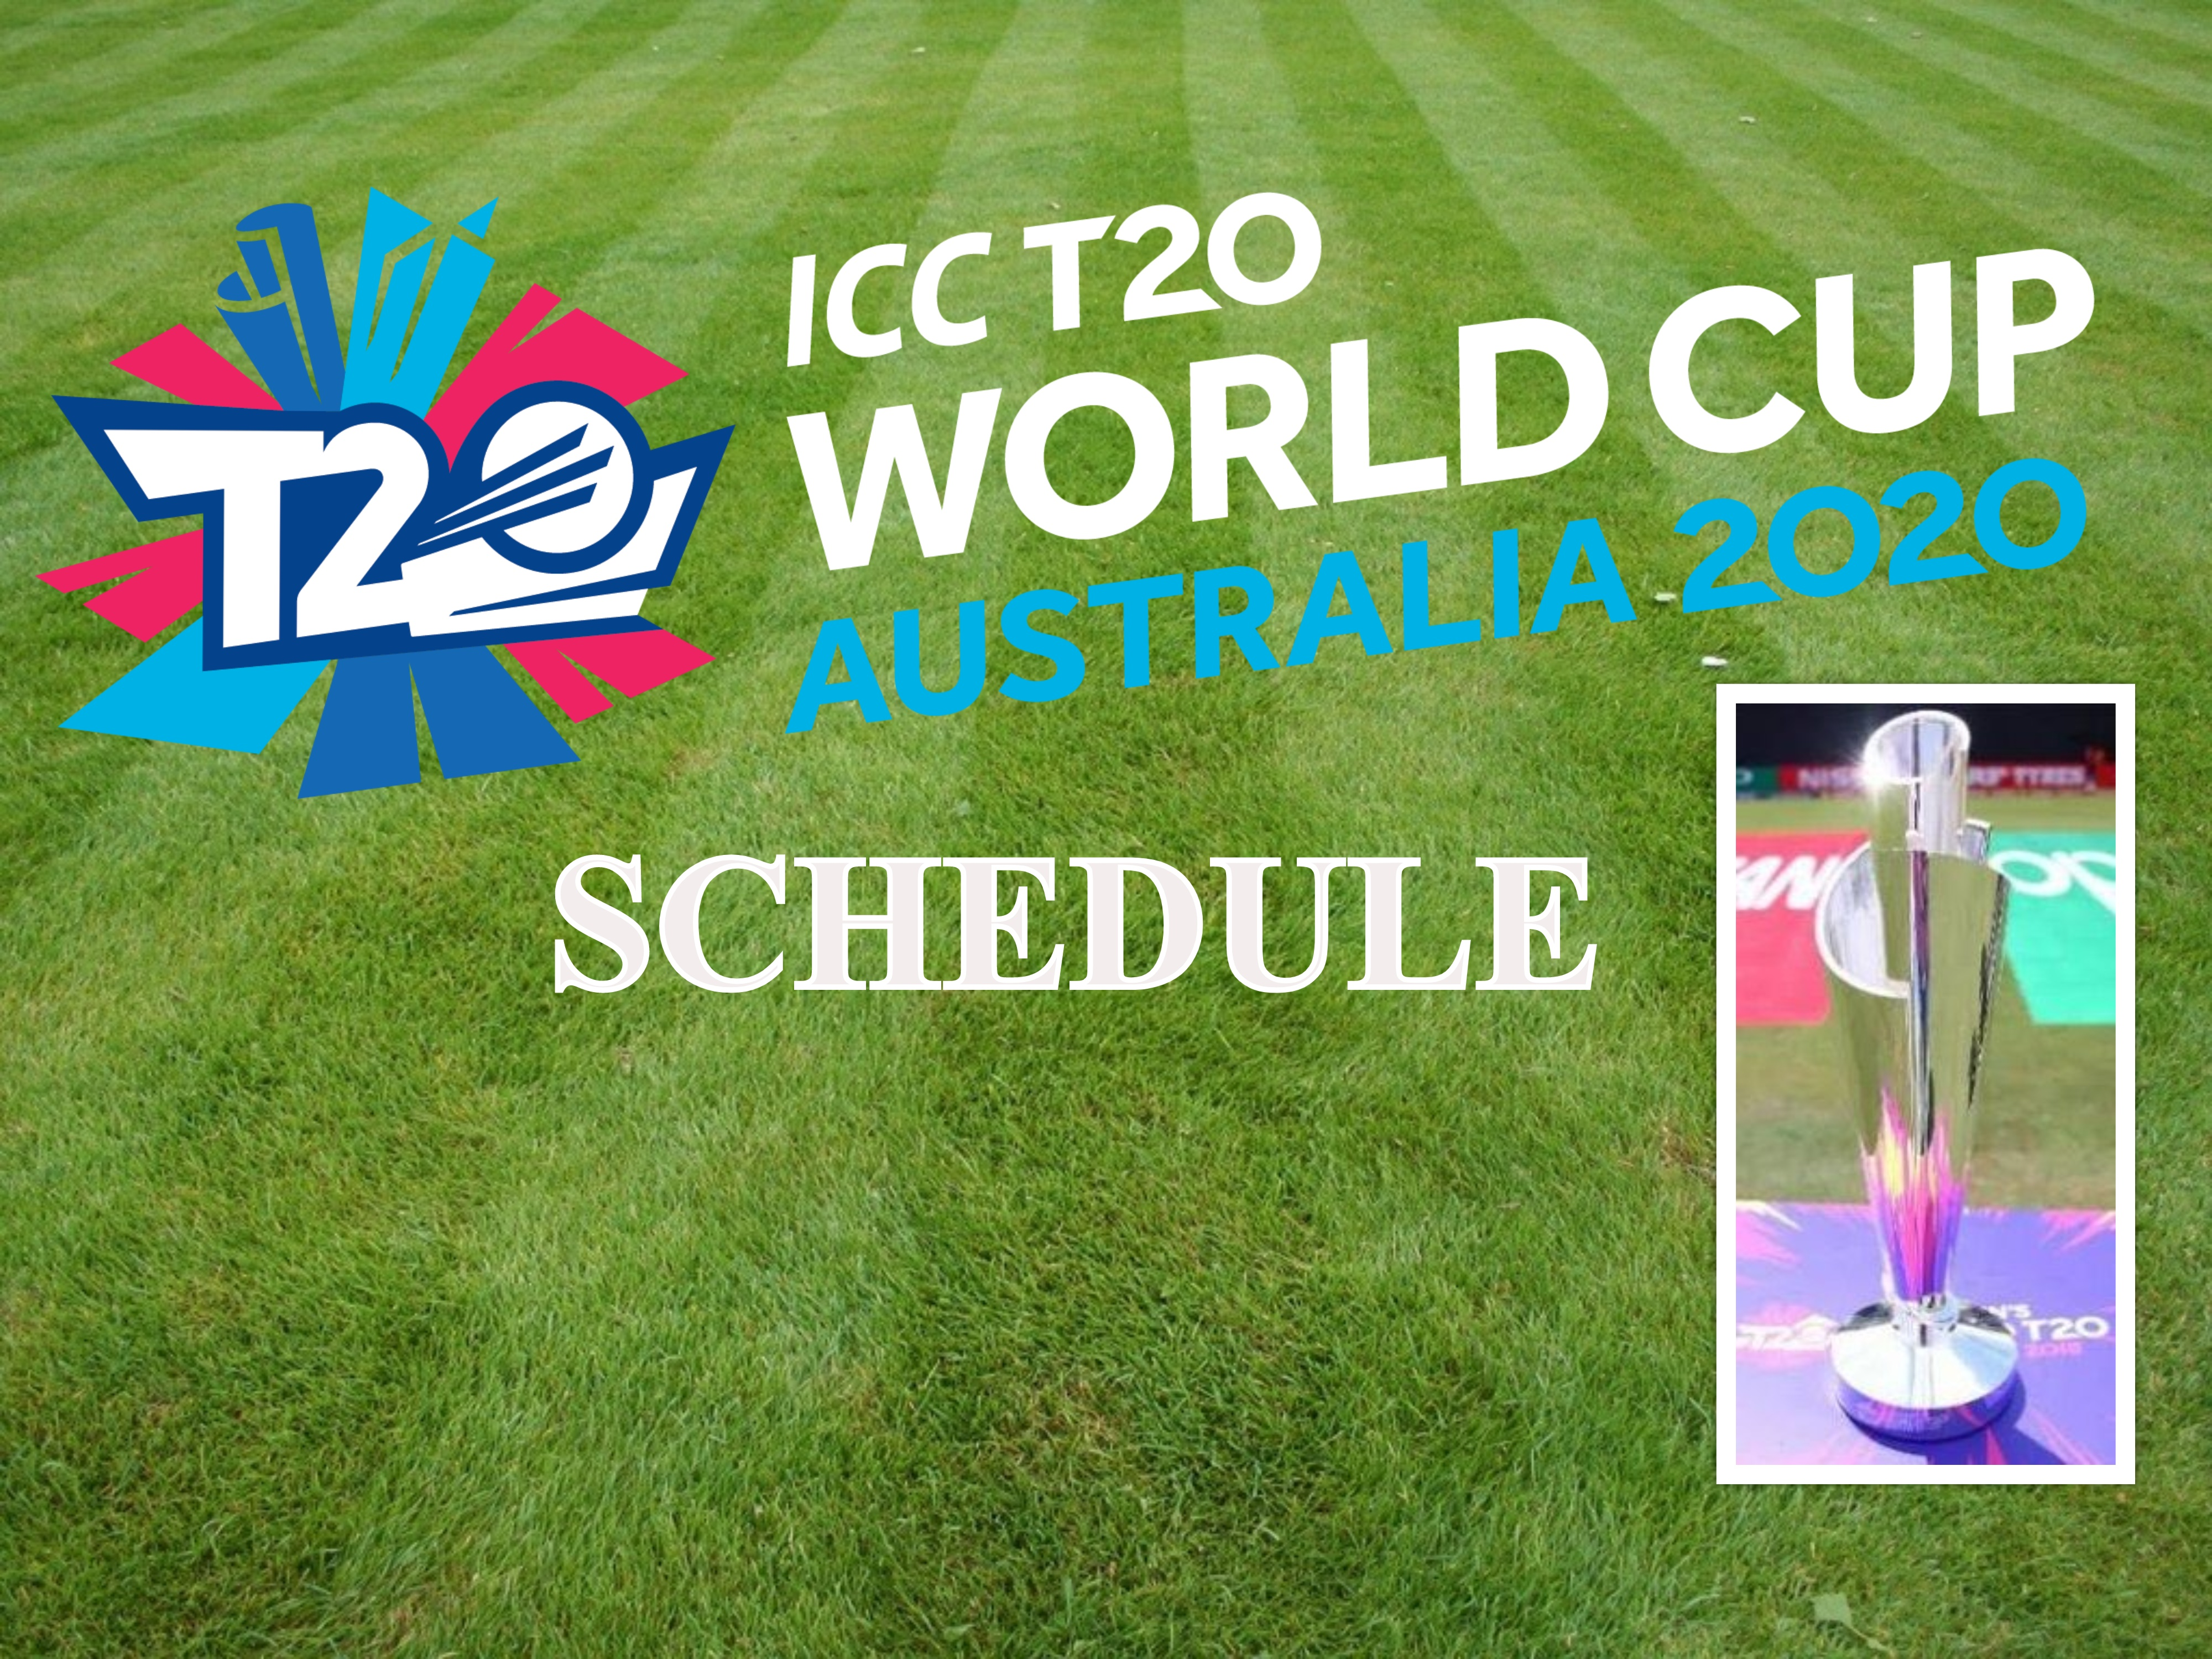 ICC T20 World Cup 2020 Schedule, Teams, Groups & Venues